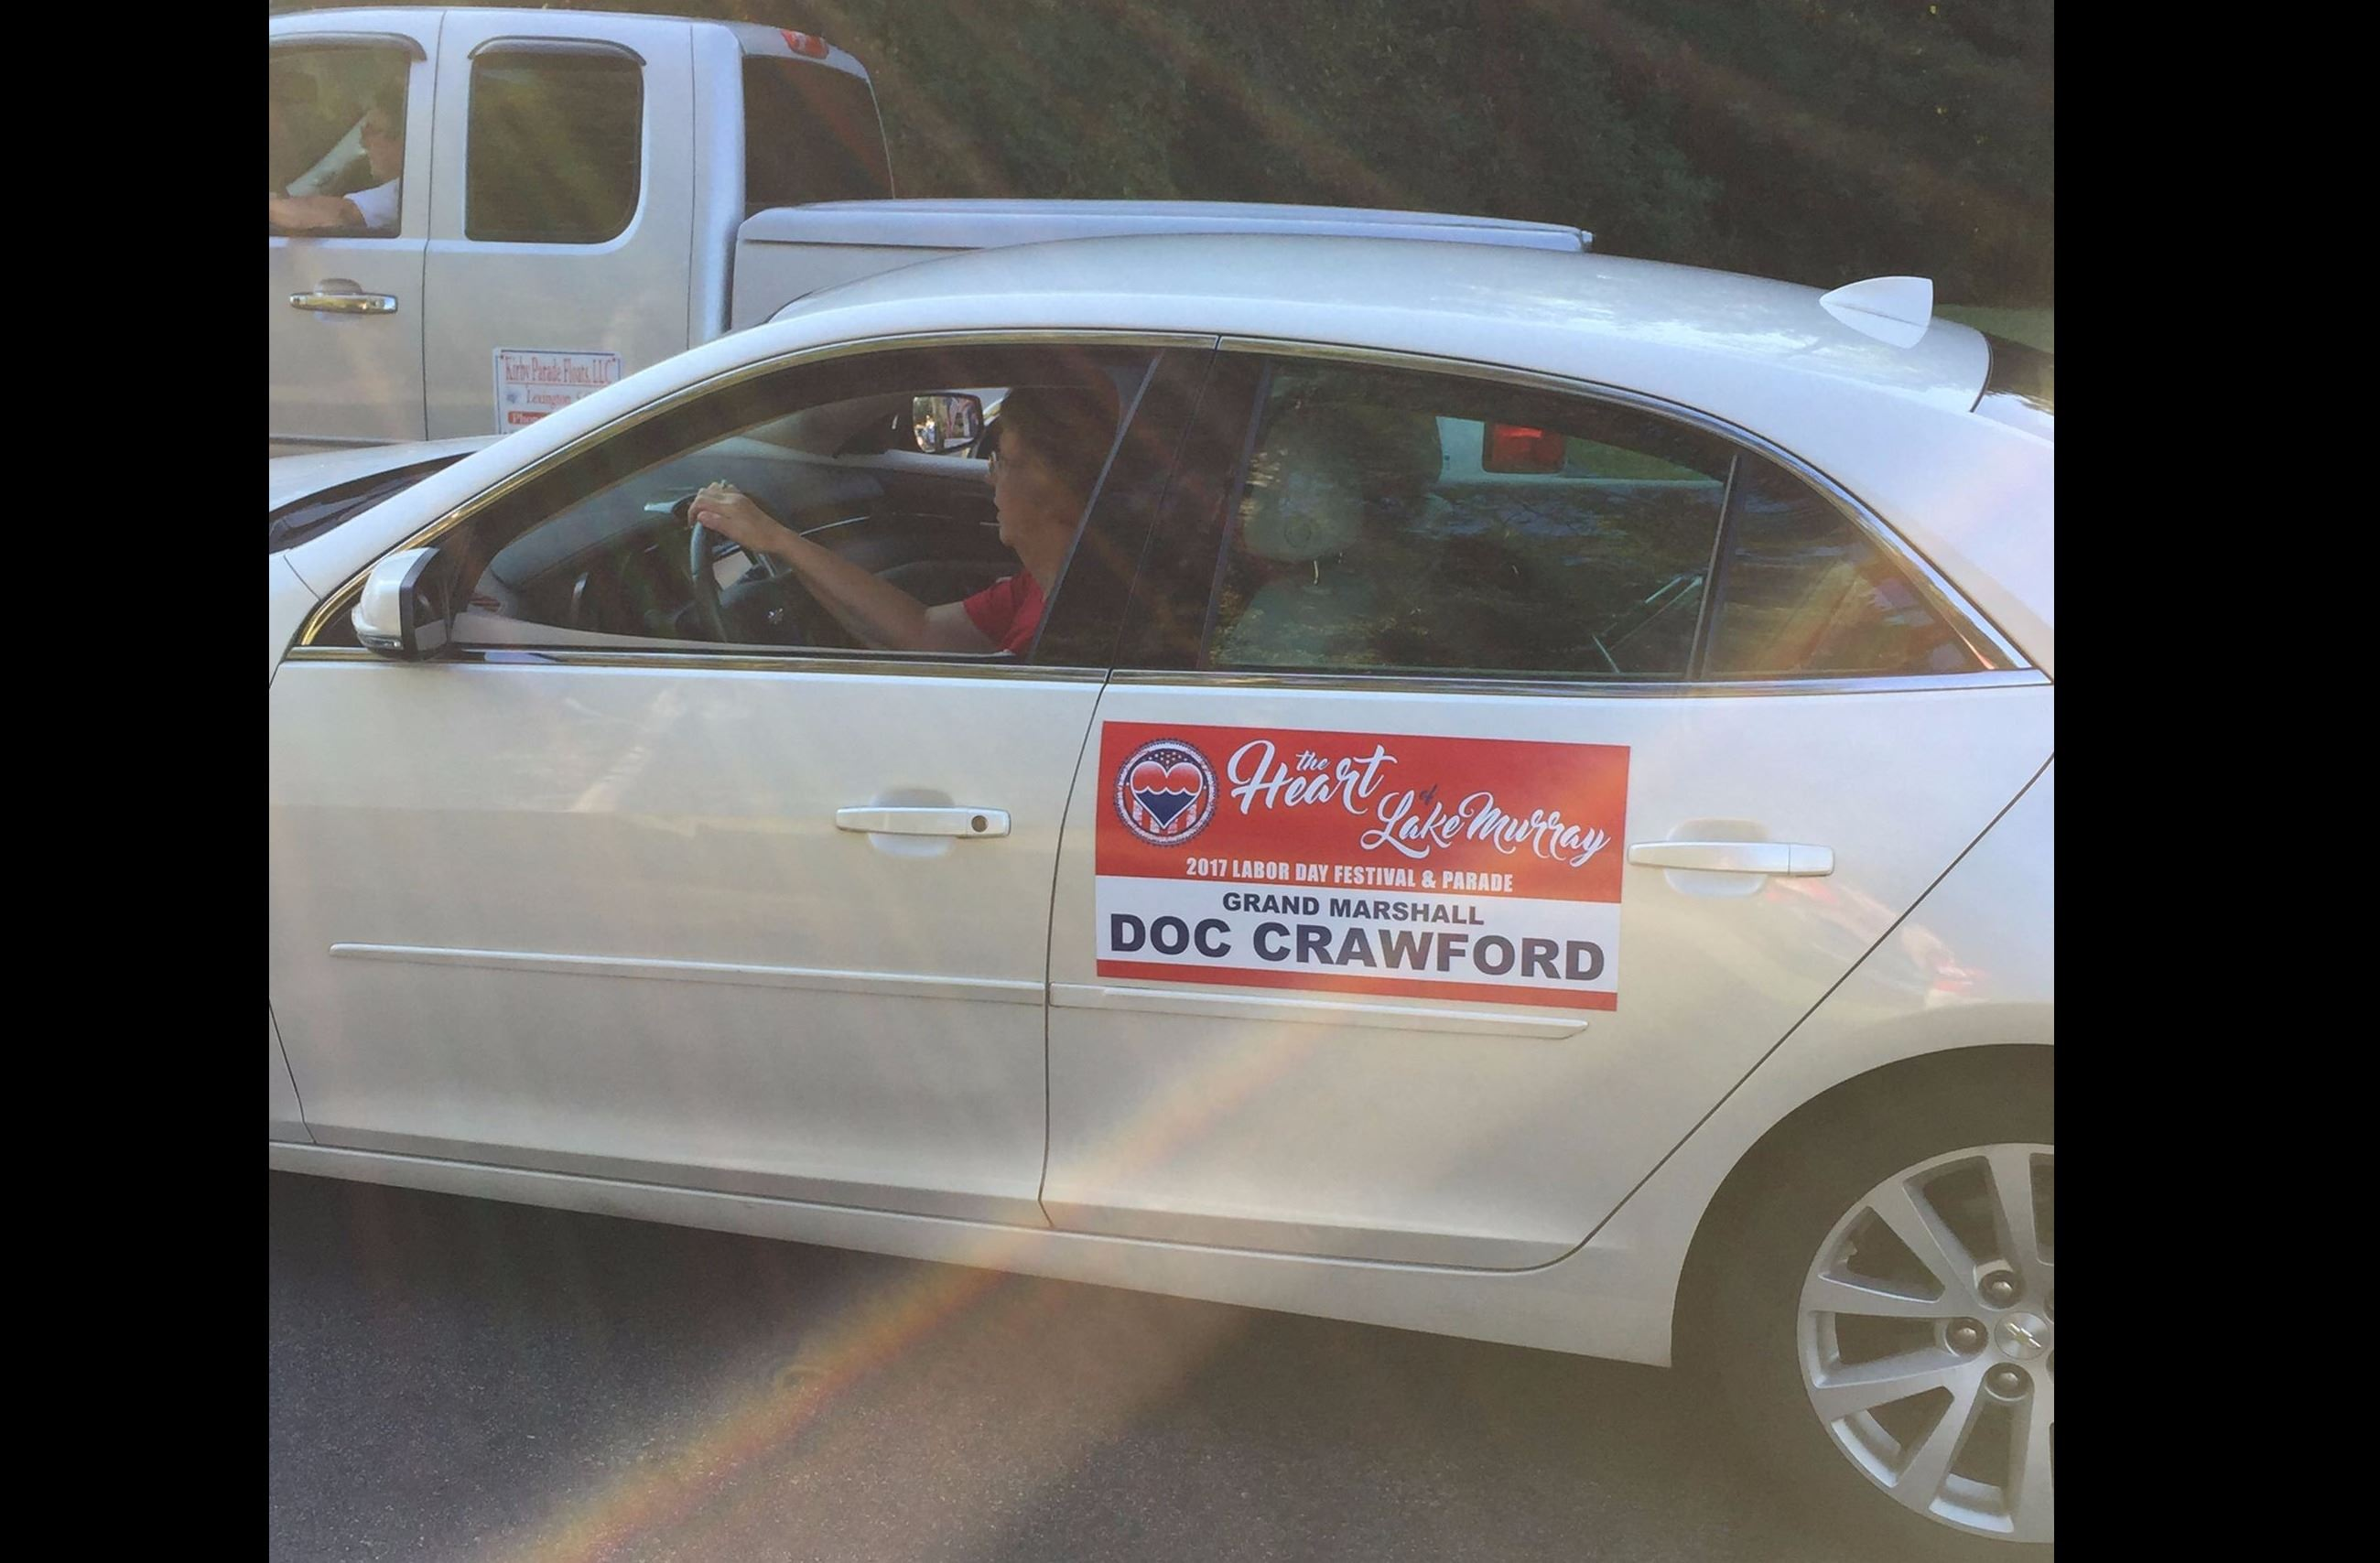 Grand Marshall Doc Crawford